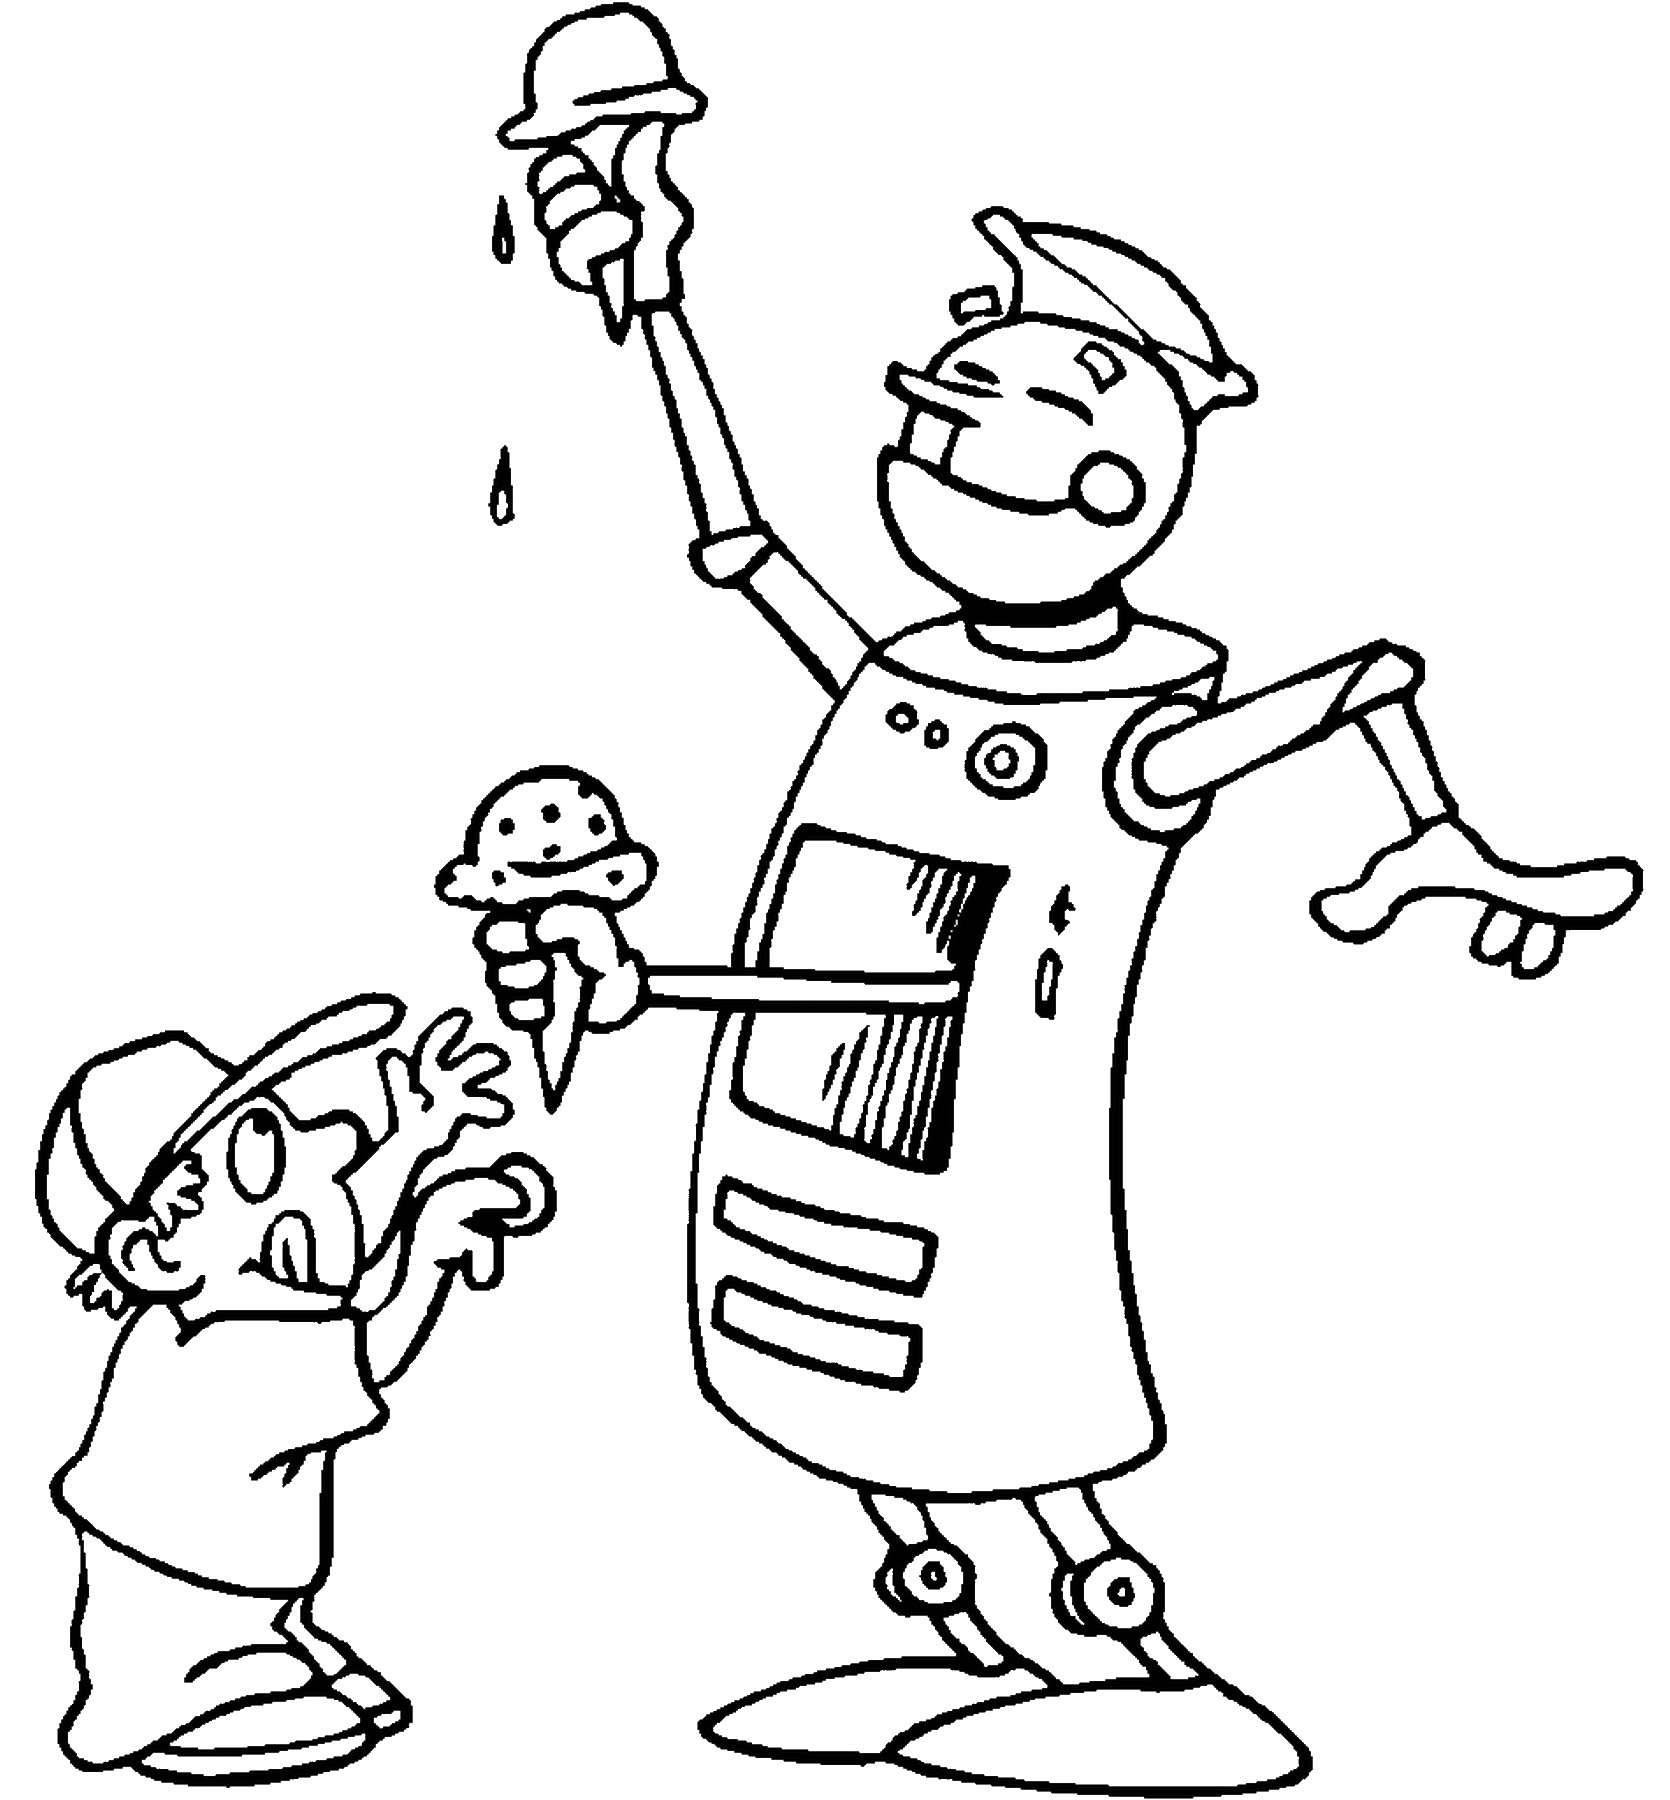 science coloring sheet science coloring pages best coloring pages for kids sheet science coloring